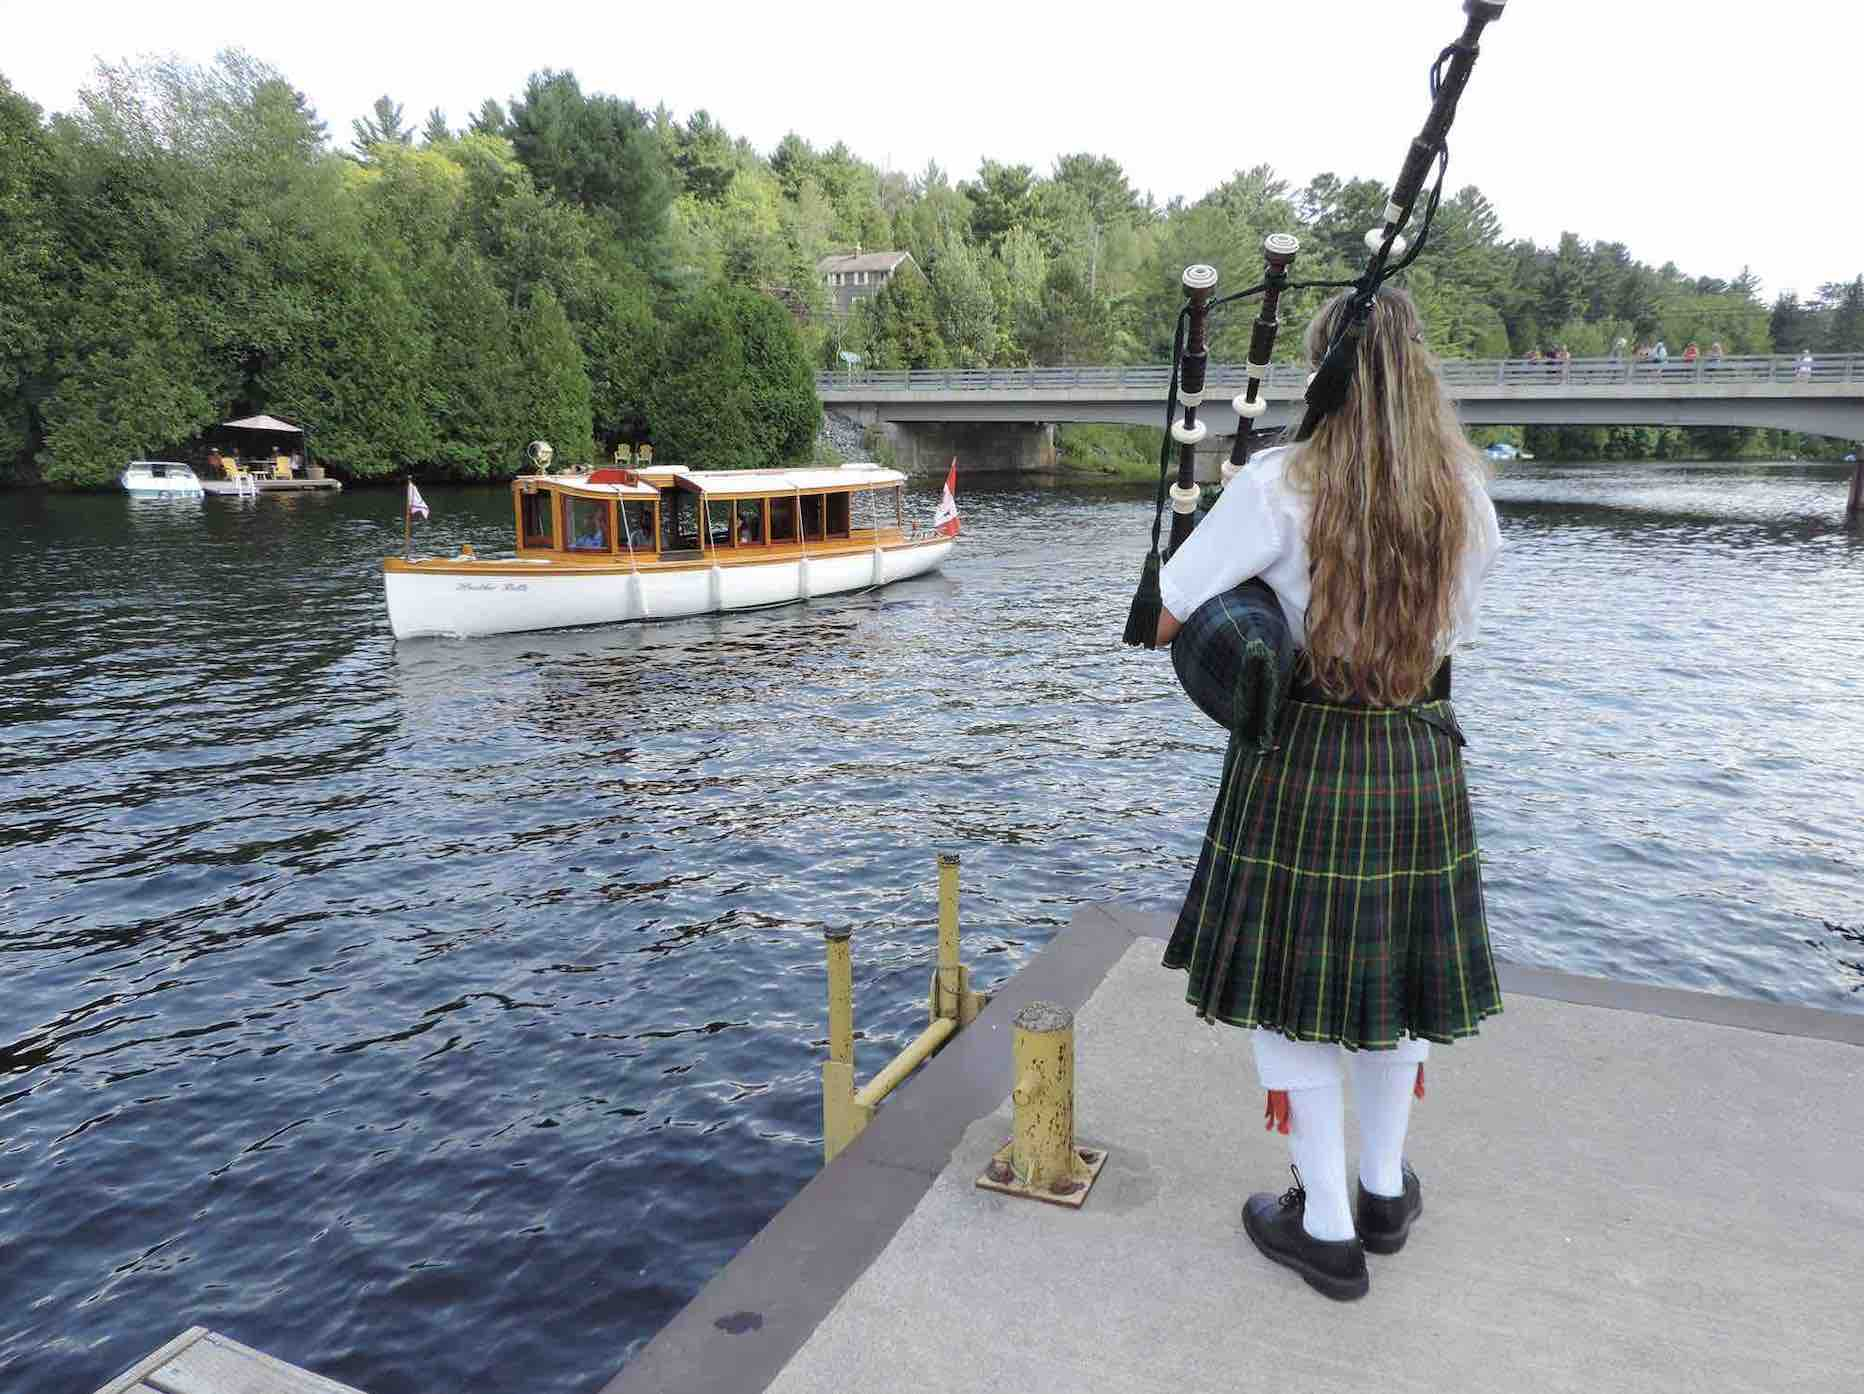 The Marvellous Lake of Bays Antique Boat Show with antique boats and bagpiper on dock